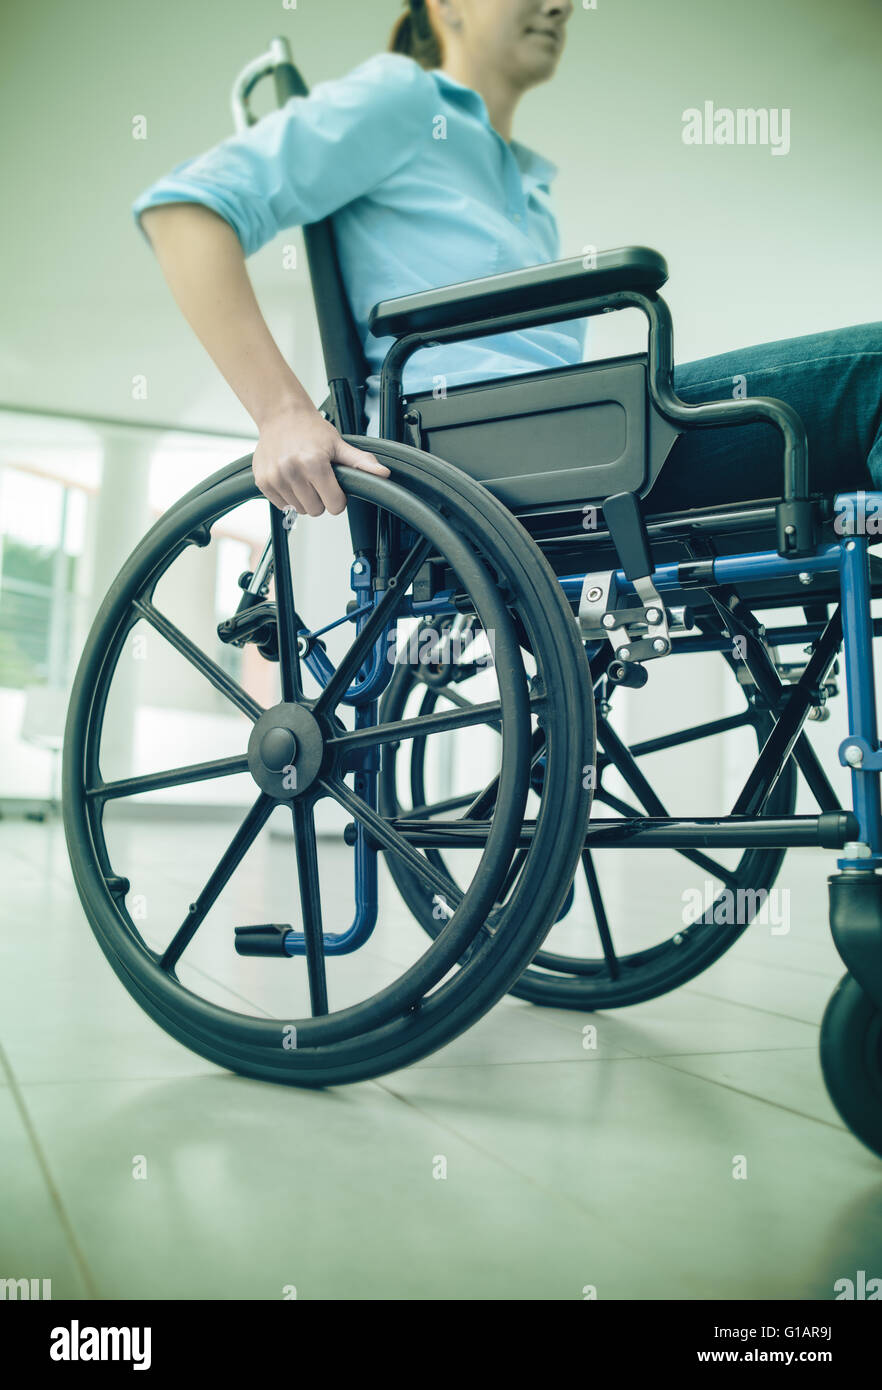 Young woman in wheelchair hand pushing on wheel close up, disability and handicap concept - Stock Image